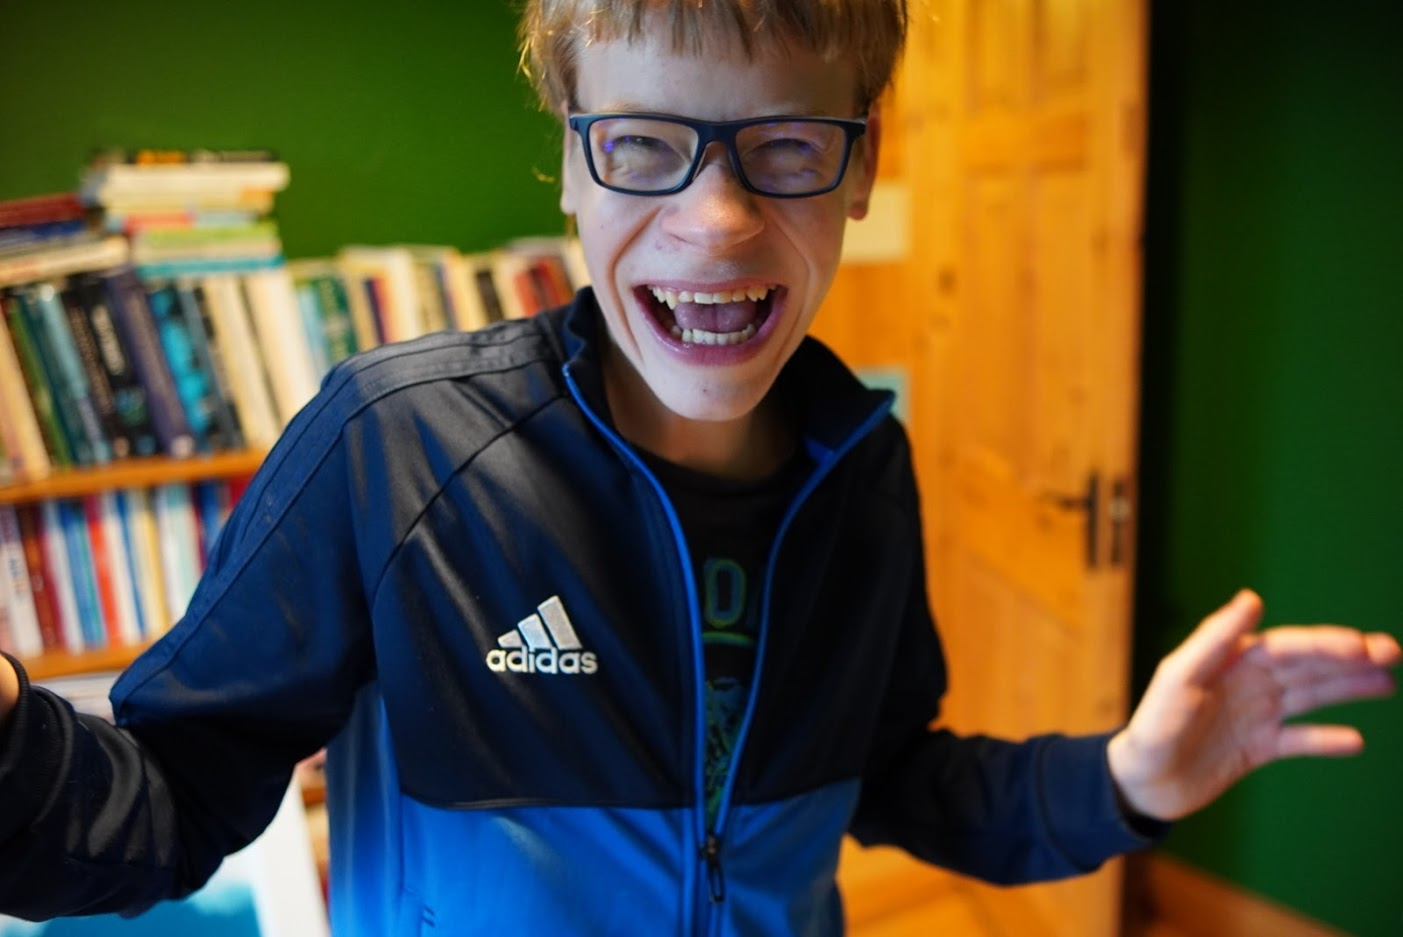 Laughing boy wearing glasses